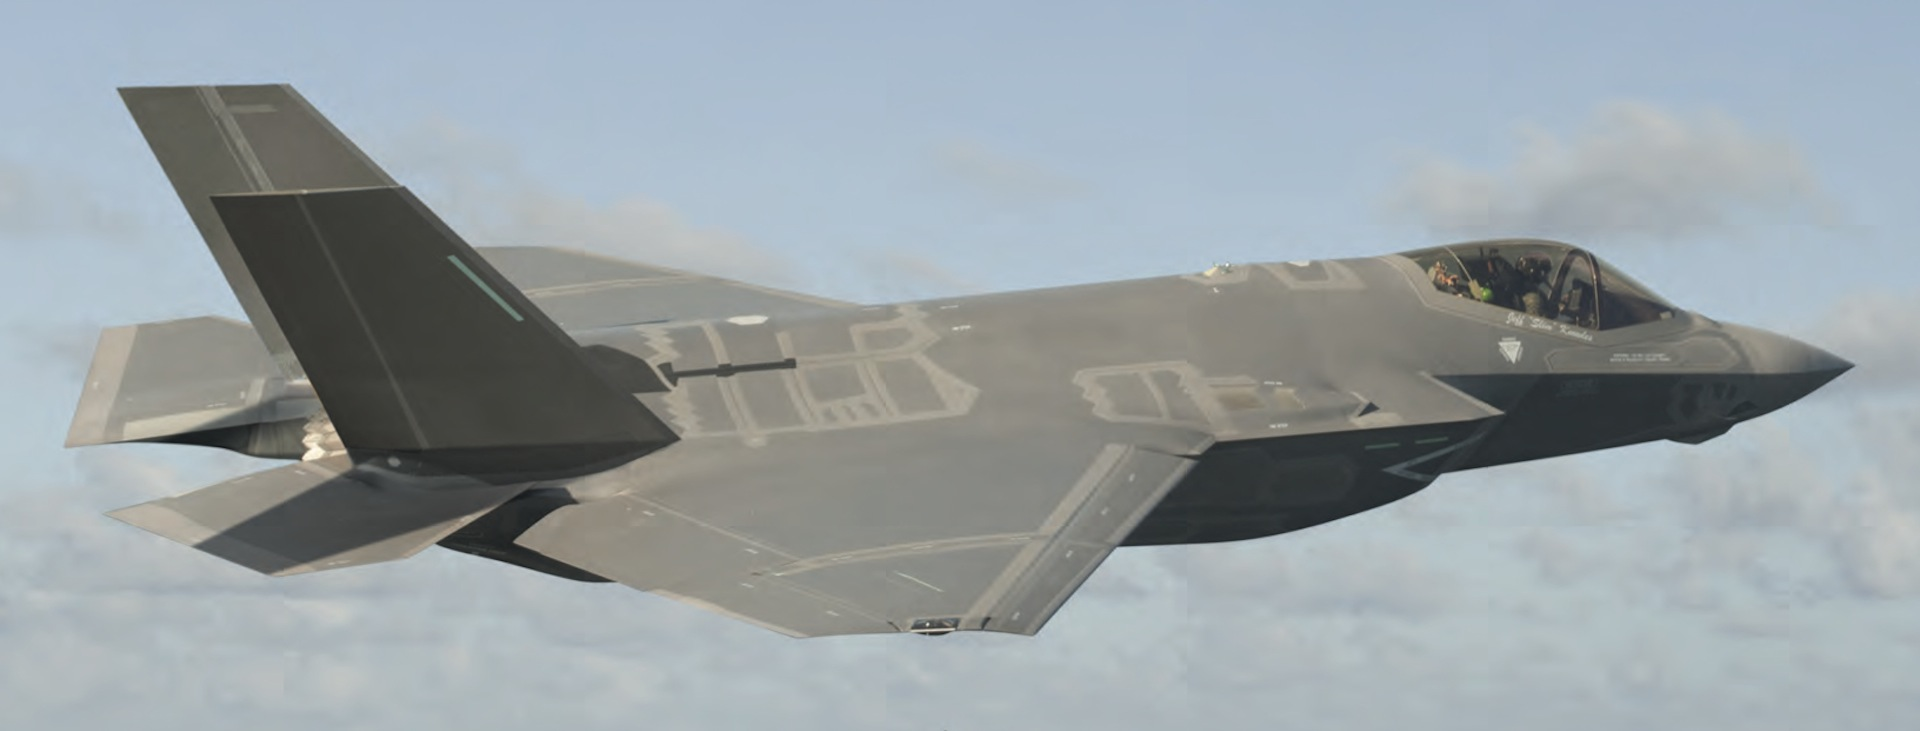 Deal Reached for 32 More F-35 Fighters